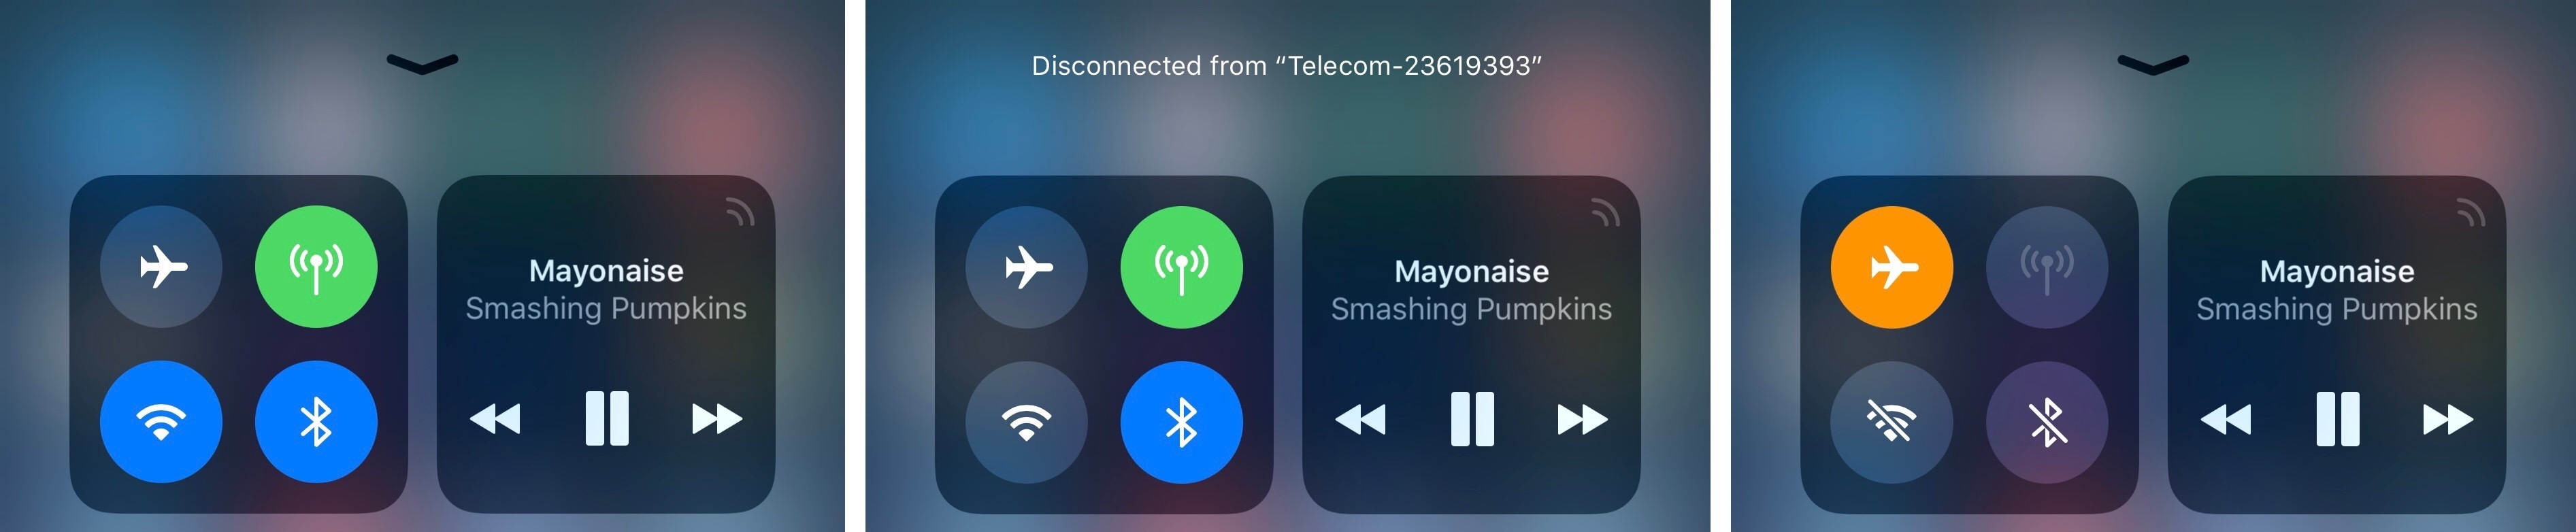 Multiple Wi-Fi states in Control Center (on, disconnected, off).